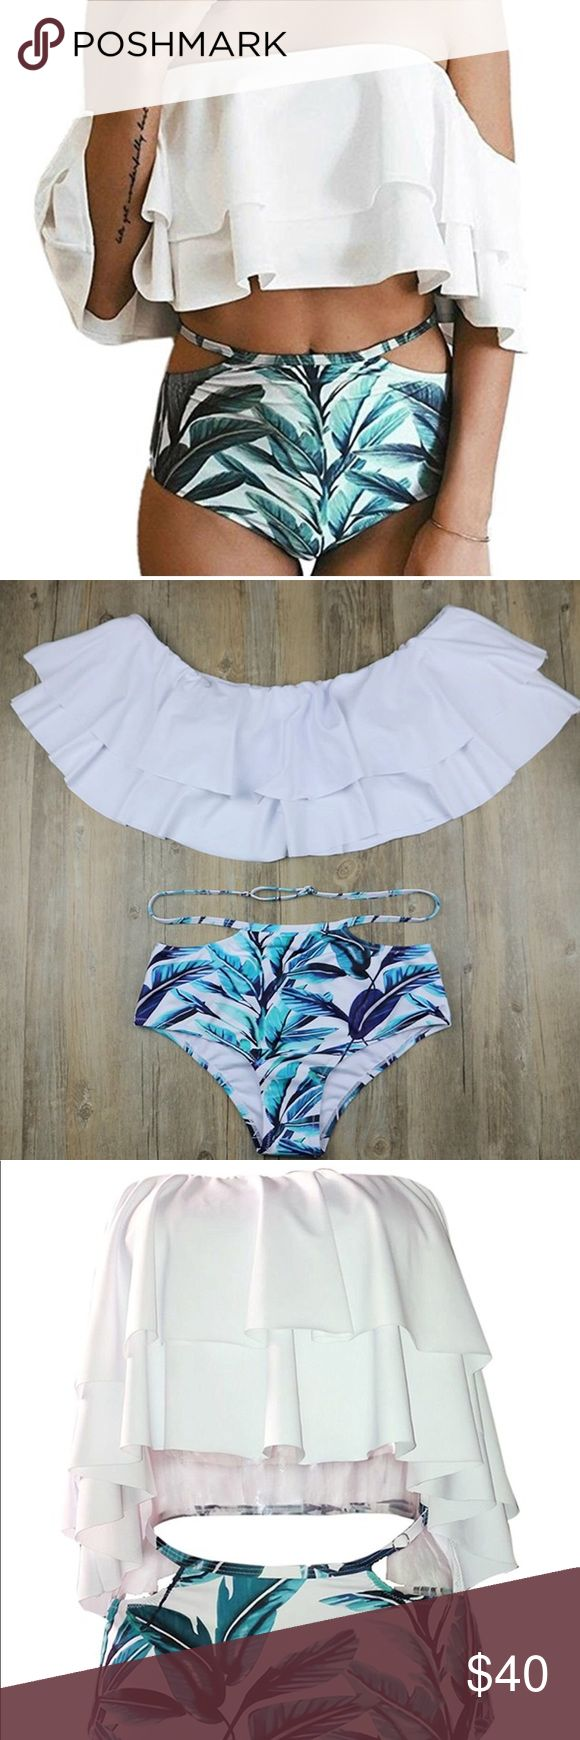 New bikini high wasted any size Any size available, super cute highwasted off the shoulder bikini. Brand new with authentication tags. acacia swimwear Swim Bikinis